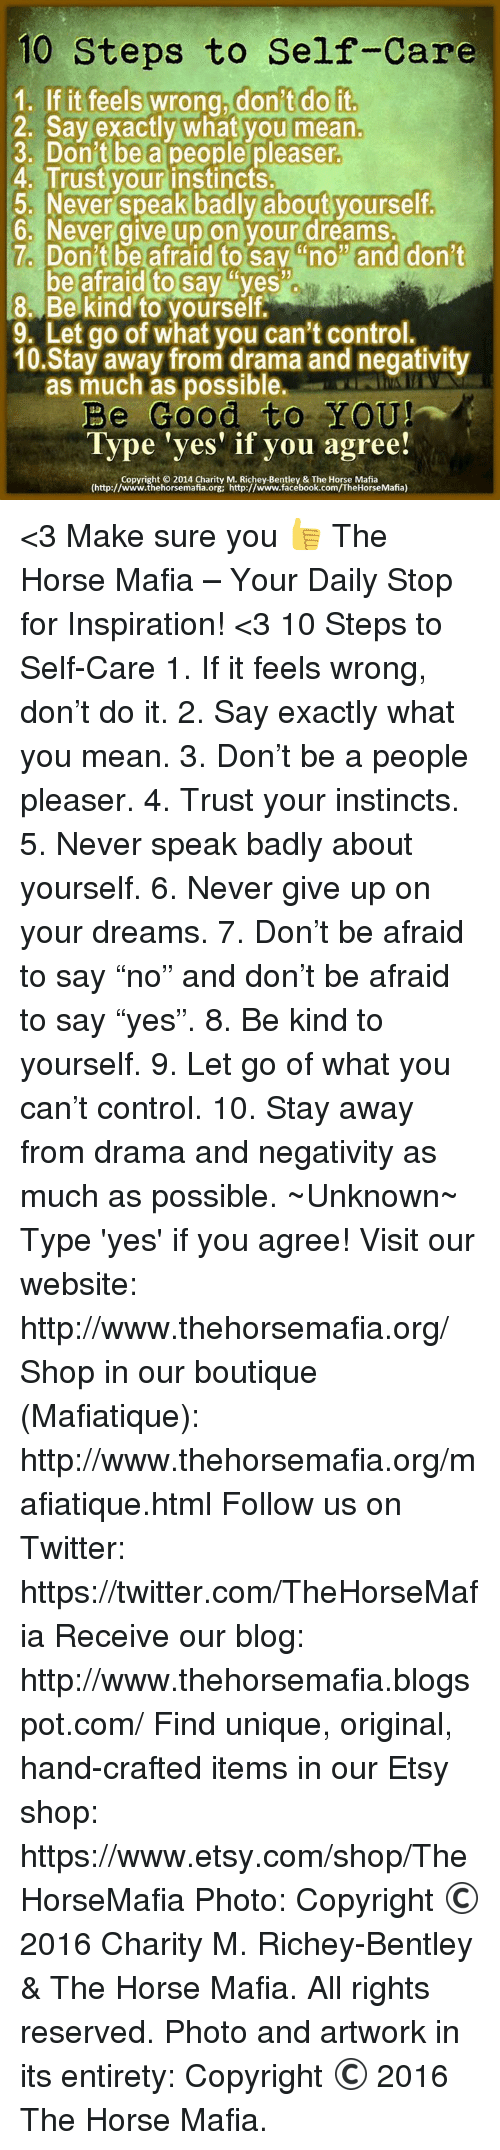 """Facebook, Memes, and Orgy: 10 Steps to Self-Care  1. If it feels wrong.don't do it  2. Say exactly what you mean.  3. Don't be a people pleaser  4. Trust your instincts.  5. Never speak badly about yourself  6. Never give up on your dreams.  7. Don'tbe afraid to sav """"no"""" and don't  2. Say exactly whatyou mean.  be afraid to say ys  8 Be kind to yourself.  9. Let go of what you can't control.  10.Stay away from drama and negativity  as much as possible.  Be Good to YOU!  Type 'yes' if you agree!  (http:// woww.thehorsemafia orgy Mtfpi www.tacebook.comn/theHorseMafia)  Copyright © 2014 Charity M. Richey-Bentley & The Horse Mafia  (http://www.thehorsemafia.org; http://www.facebook.com/TheHorseMafia) <3 Make sure you 👍 The Horse Mafia – Your Daily Stop for Inspiration! <3 10 Steps to Self-Care 1. If it feels wrong, don't do it. 2. Say exactly what you mean. 3. Don't be a people pleaser. 4. Trust your instincts. 5. Never speak badly about yourself. 6. Never give up on your dreams. 7. Don't be afraid to say """"no"""" and don't be afraid to say """"yes"""". 8. Be kind to yourself. 9. Let go of what you can't control. 10. Stay away from drama and negativity as much as possible. ~―Unknown―~ Type 'yes' if you agree! Visit our website: http://www.thehorsemafia.org/ Shop in our boutique (Mafiatique): http://www.thehorsemafia.org/mafiatique.html Follow us on Twitter: https://twitter.com/TheHorseMafia Receive our blog: http://www.thehorsemafia.blogspot.com/ Find unique, original, hand-crafted items in our Etsy shop: https://www.etsy.com/shop/TheHorseMafia Photo: Copyright © 2016 Charity M. Richey-Bentley & The Horse Mafia. All rights reserved.  Photo and artwork in its entirety: Copyright © 2016 The Horse Mafia."""